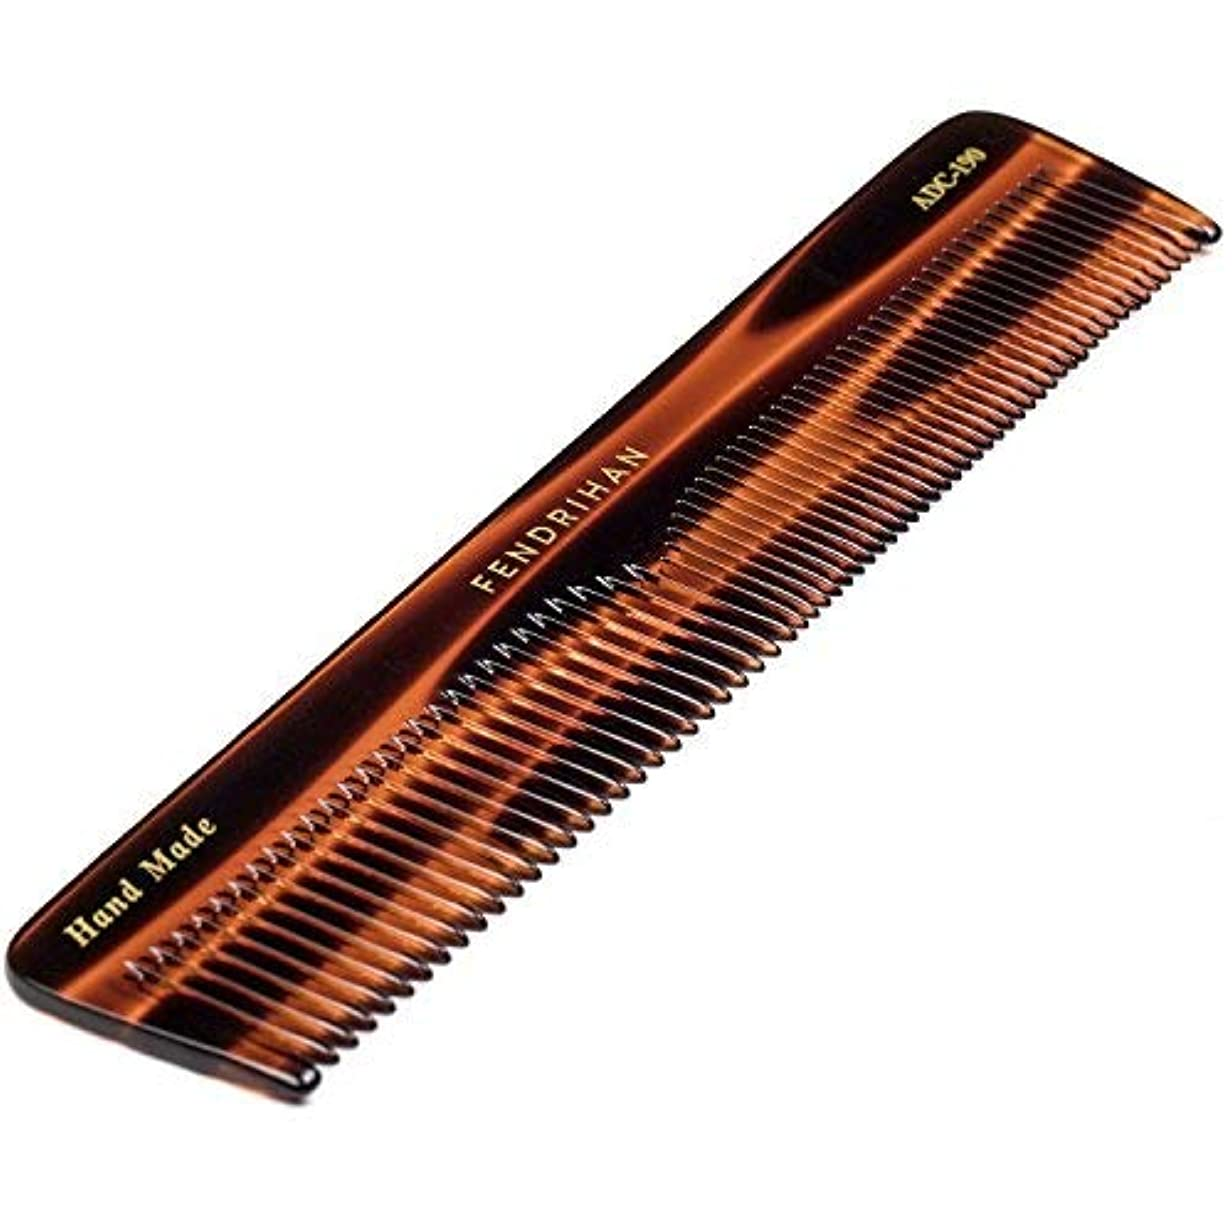 北米肯定的痛いFendrihan Hand Finished Large Double Tooth Comb for Men, Faux Tortoise (7.3 Inches) [並行輸入品]